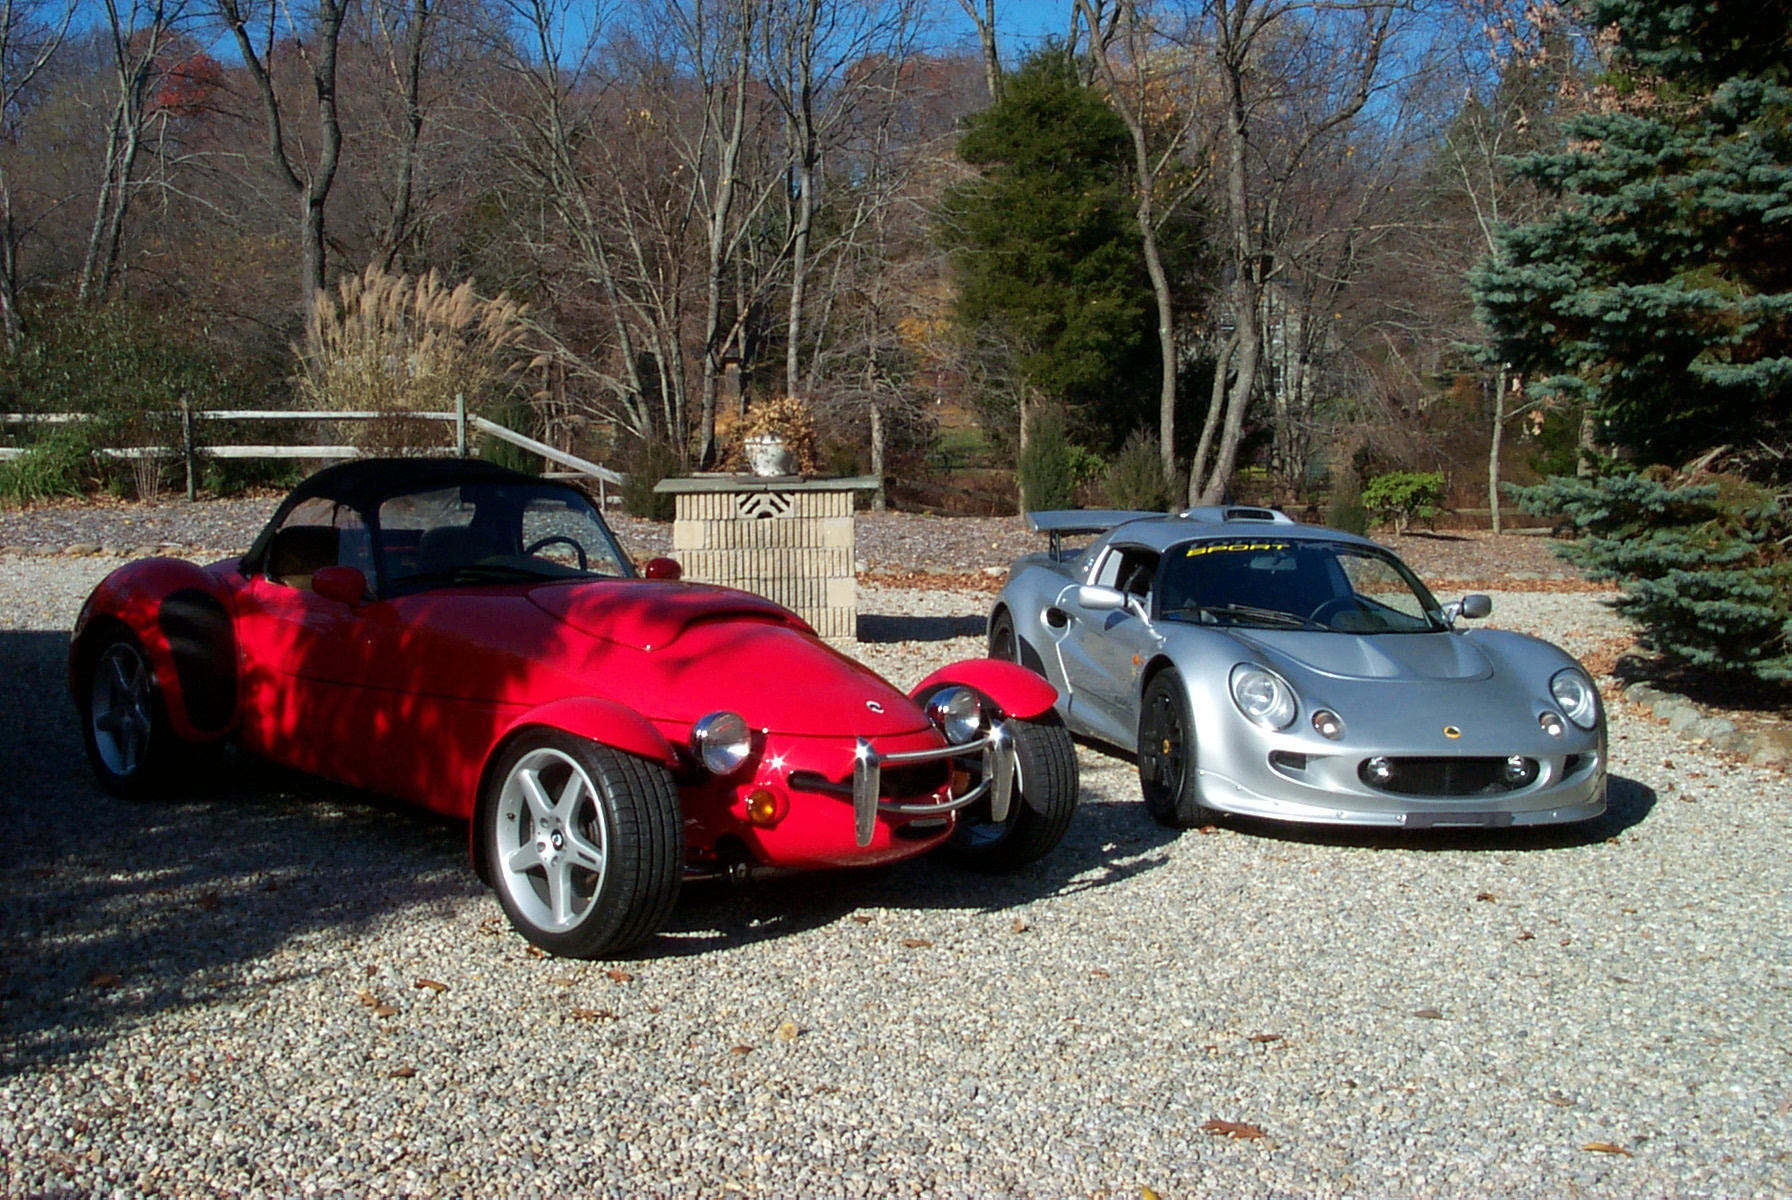 Cars panoz aiv roadster 2004